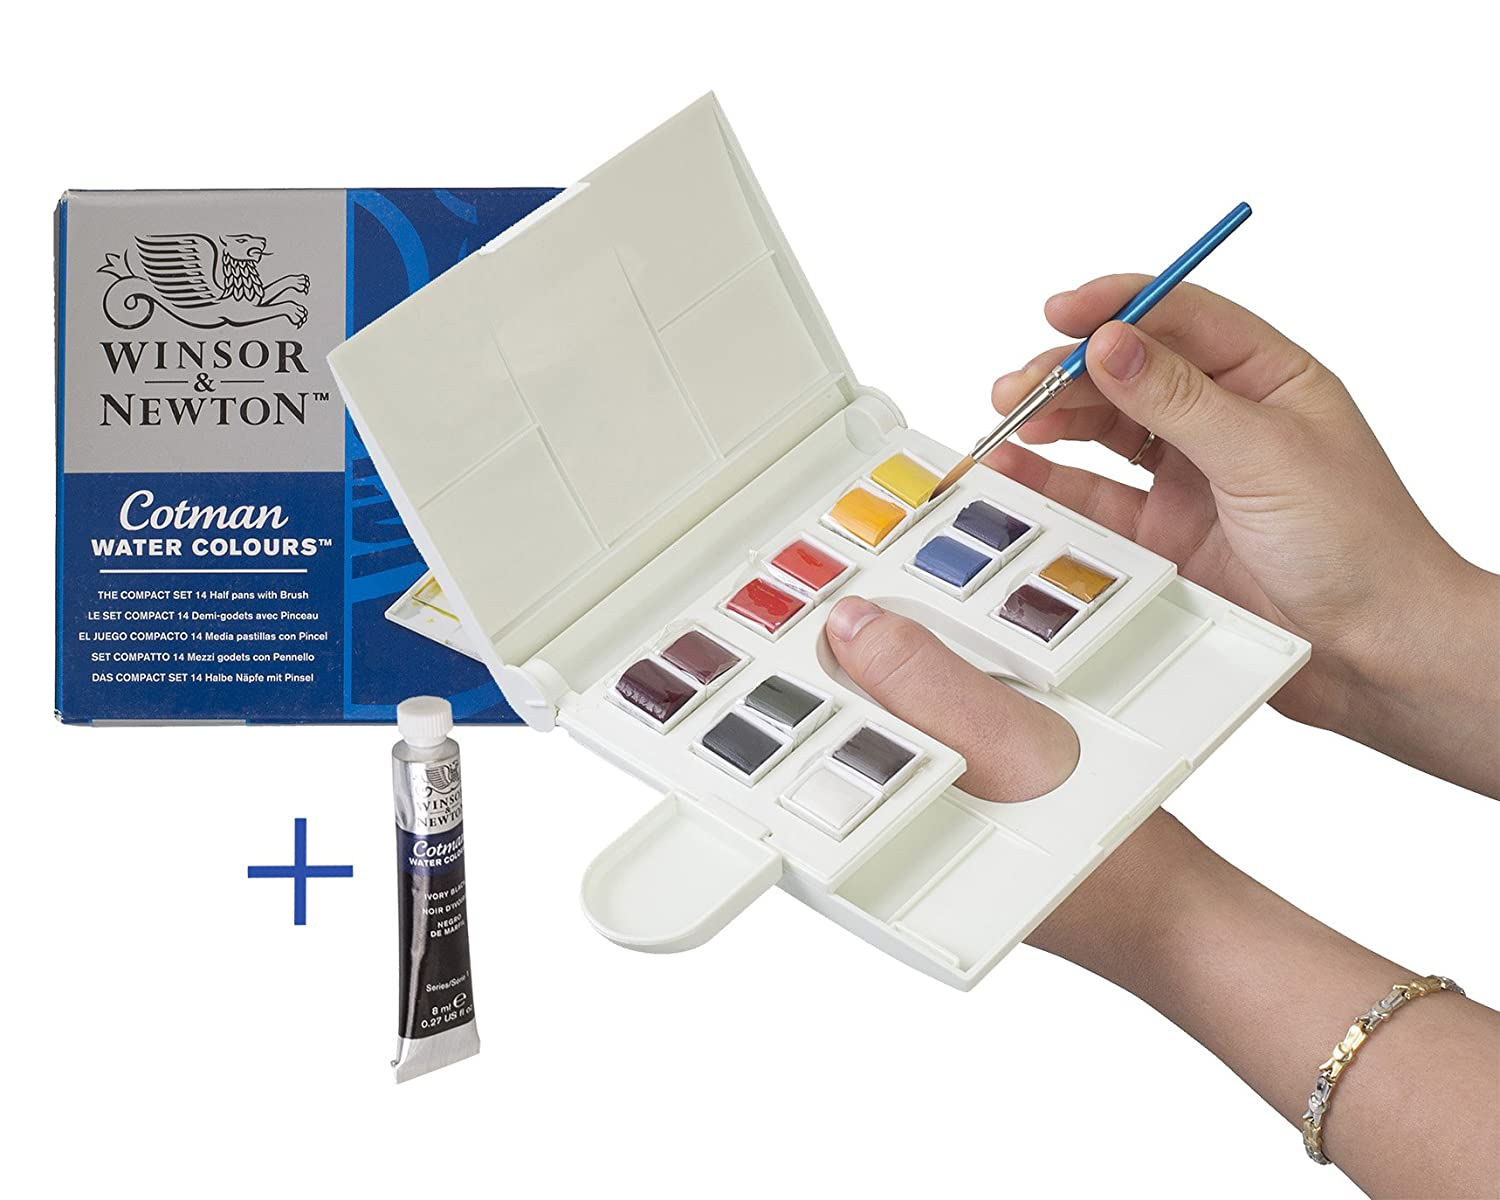 Winsor & Newton Cotman Watercolor Travel Set + 8ml Tube of Ivory Black: 14 Half Pans with Water Well, Mixing Tray, Included Size 5 Field Brush and 5 section palette Built-In - Perfect for Plein Air Painting outdoors